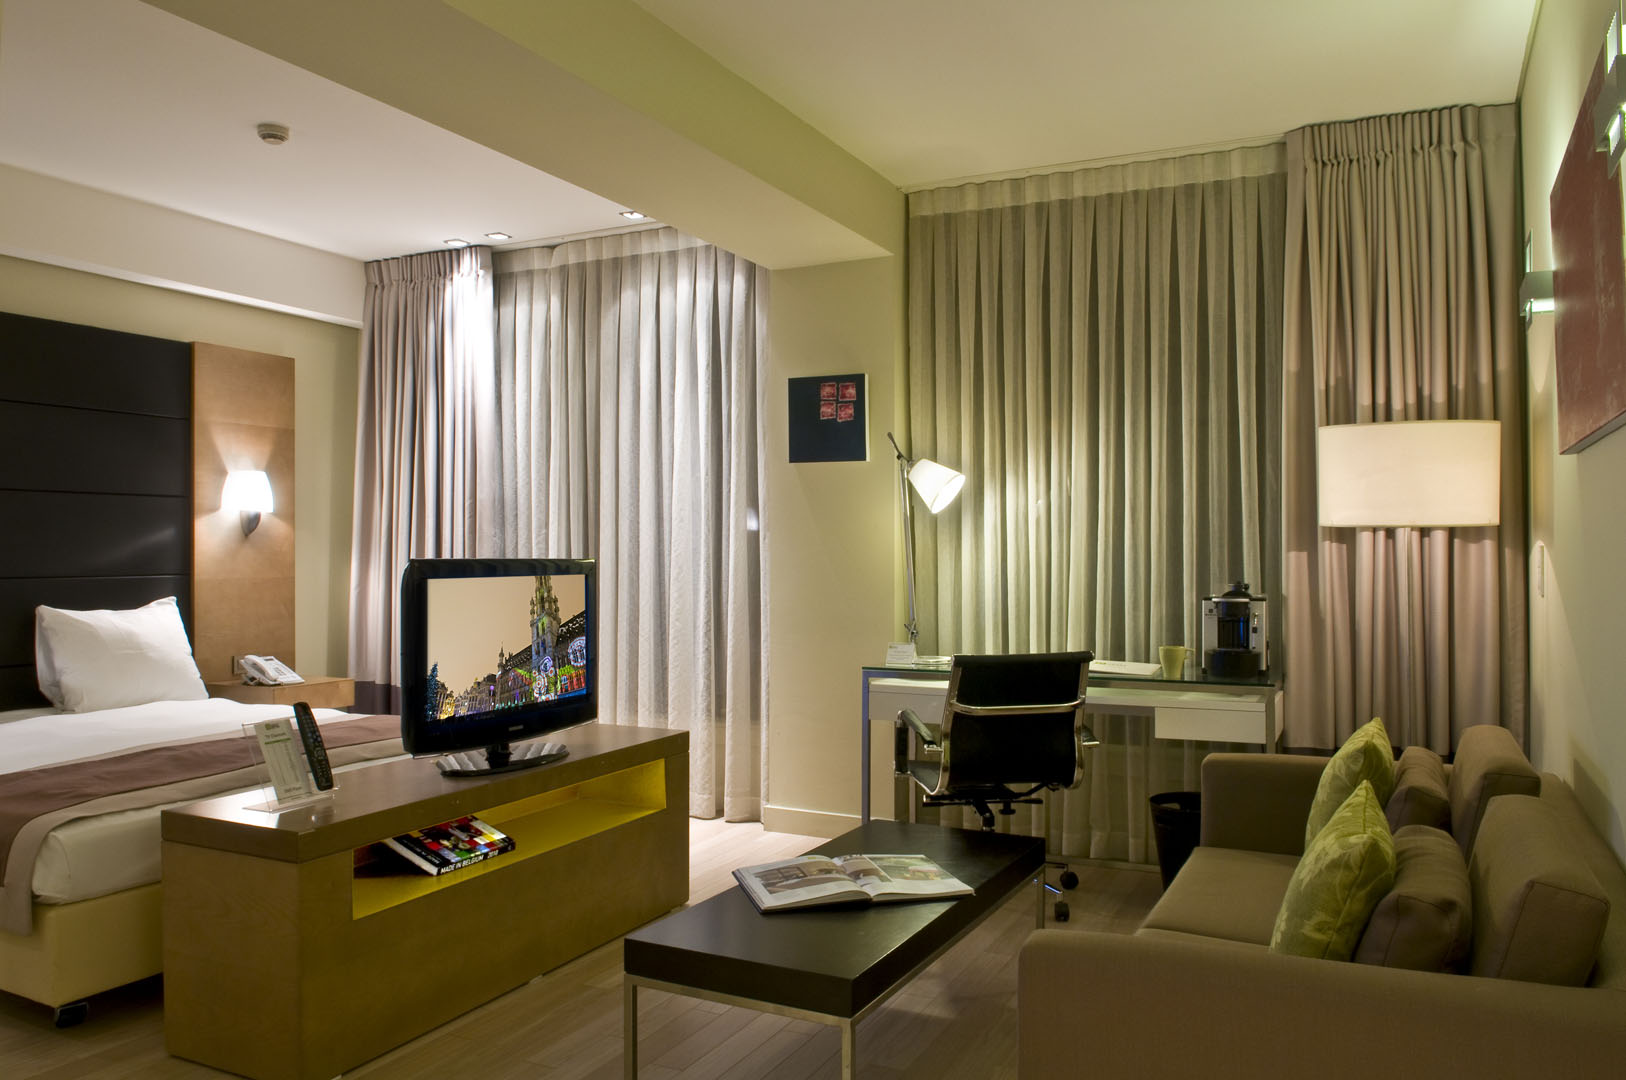 104/Grand-Place/GP Luxury room 4.jpg